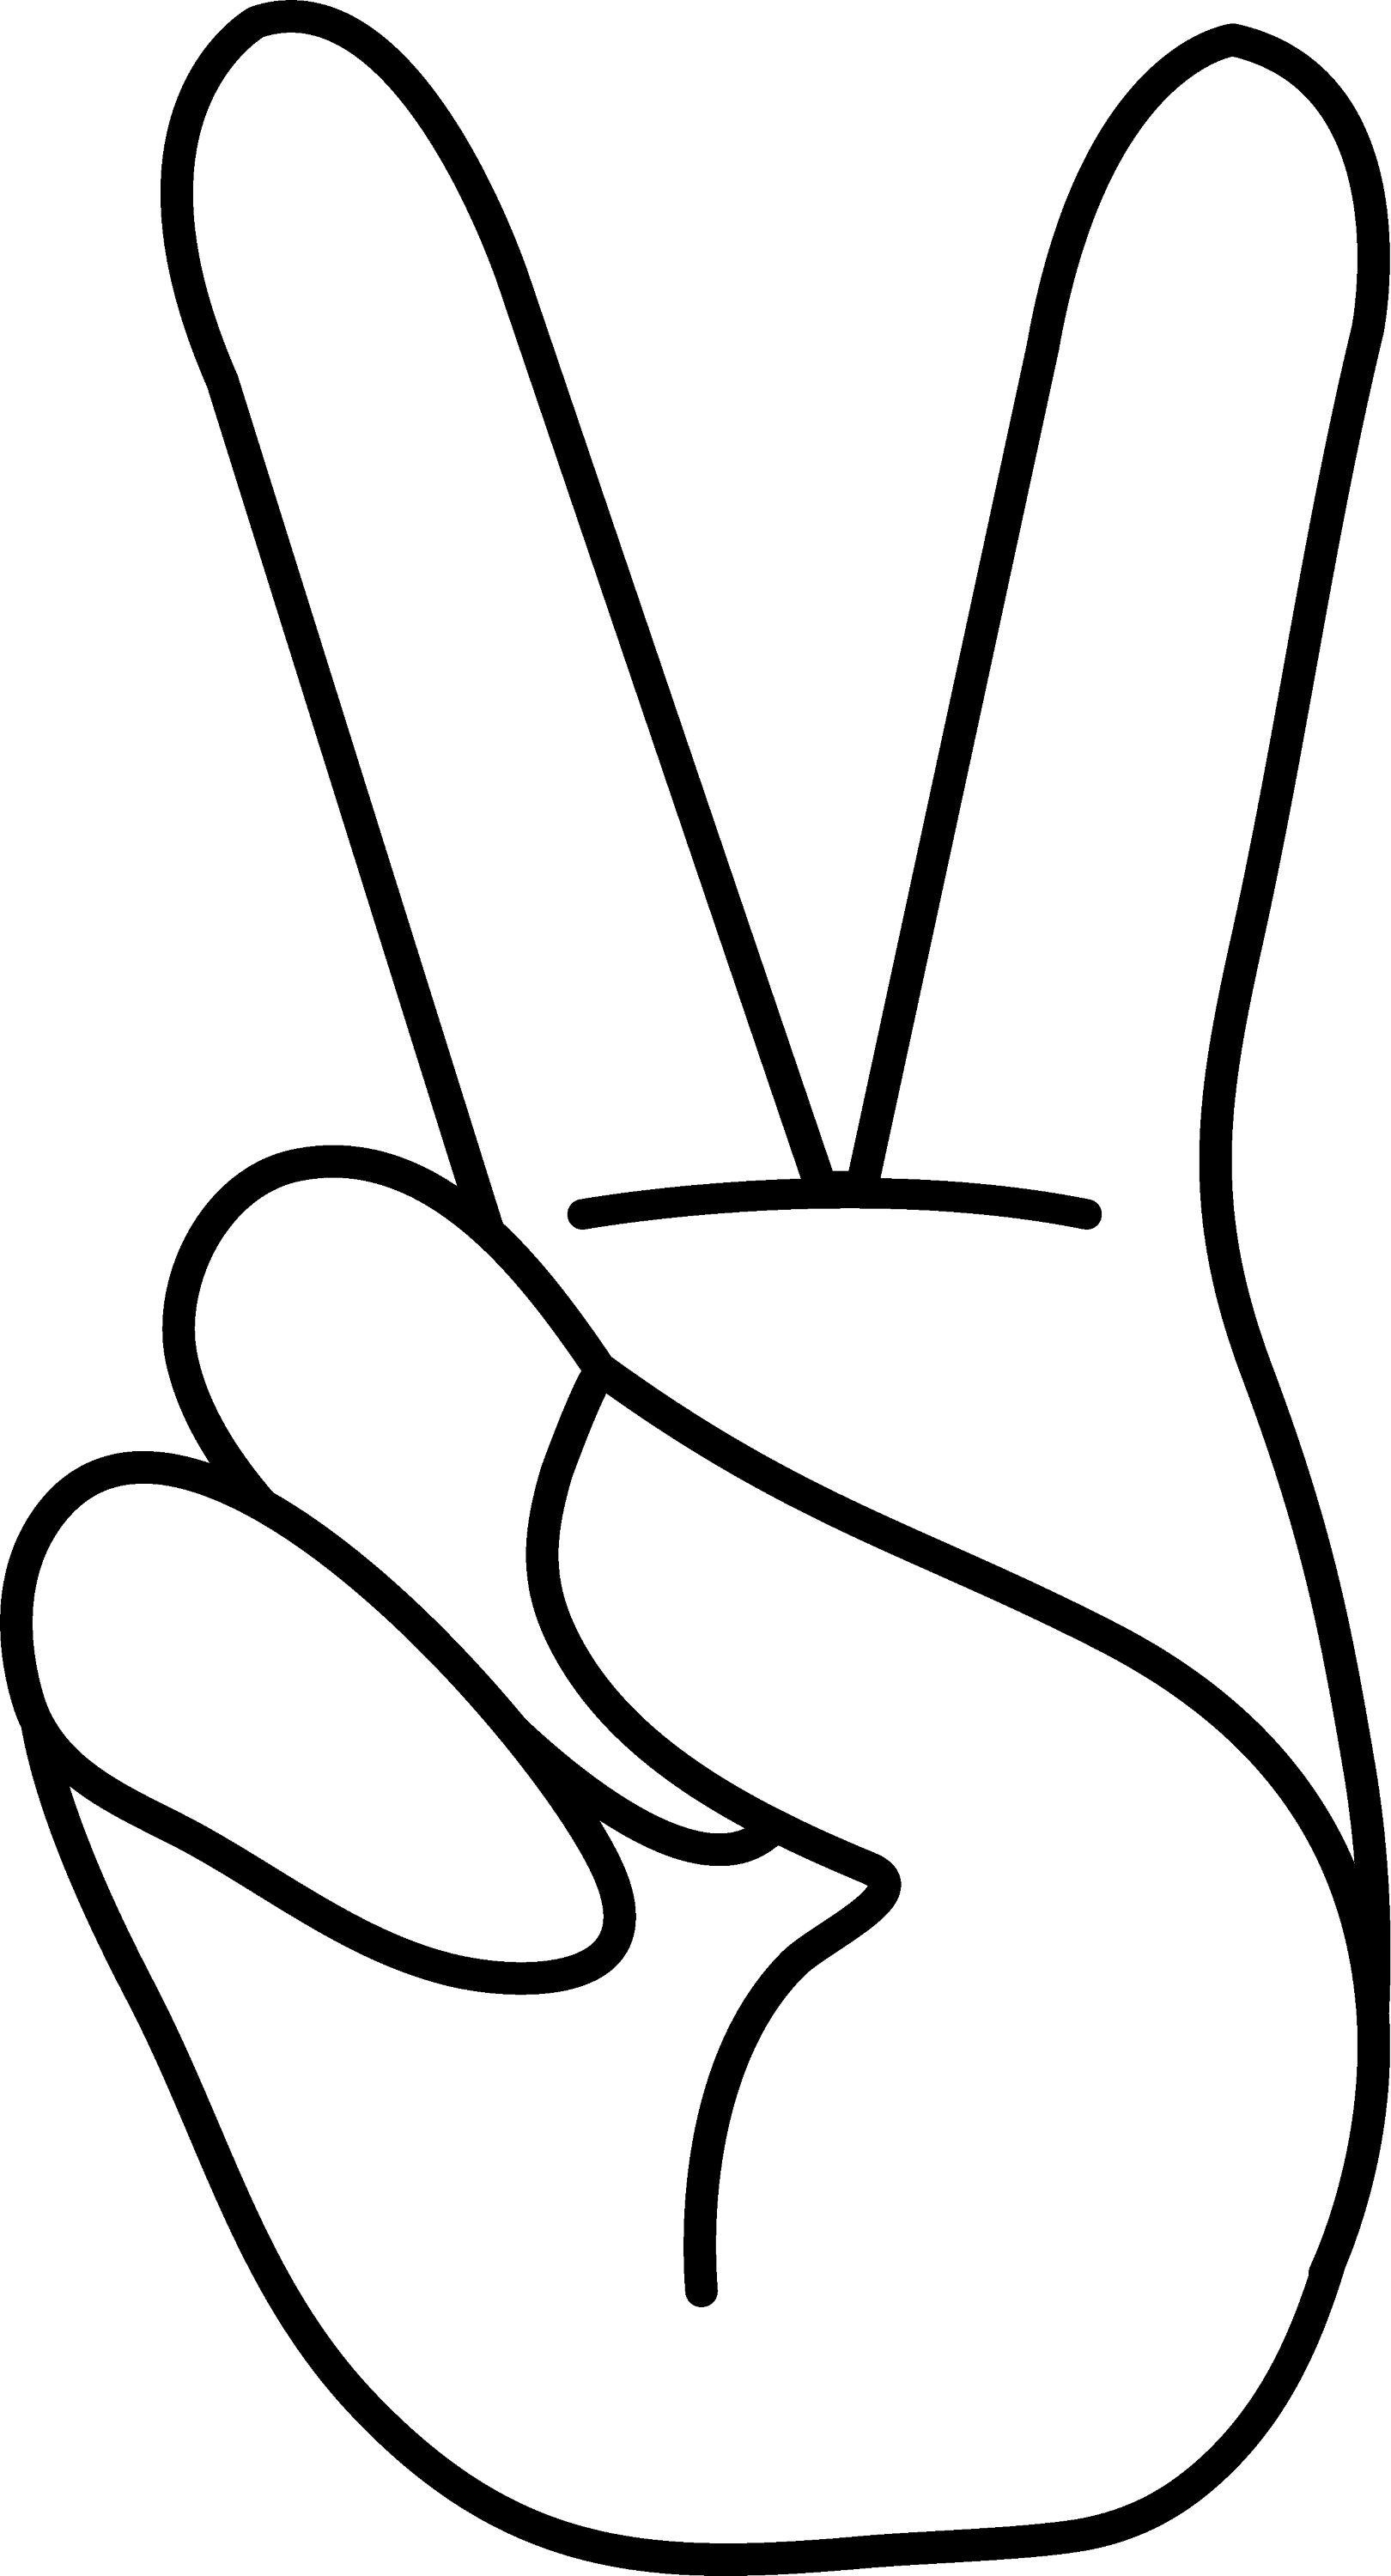 blank hand sign png - photo #9